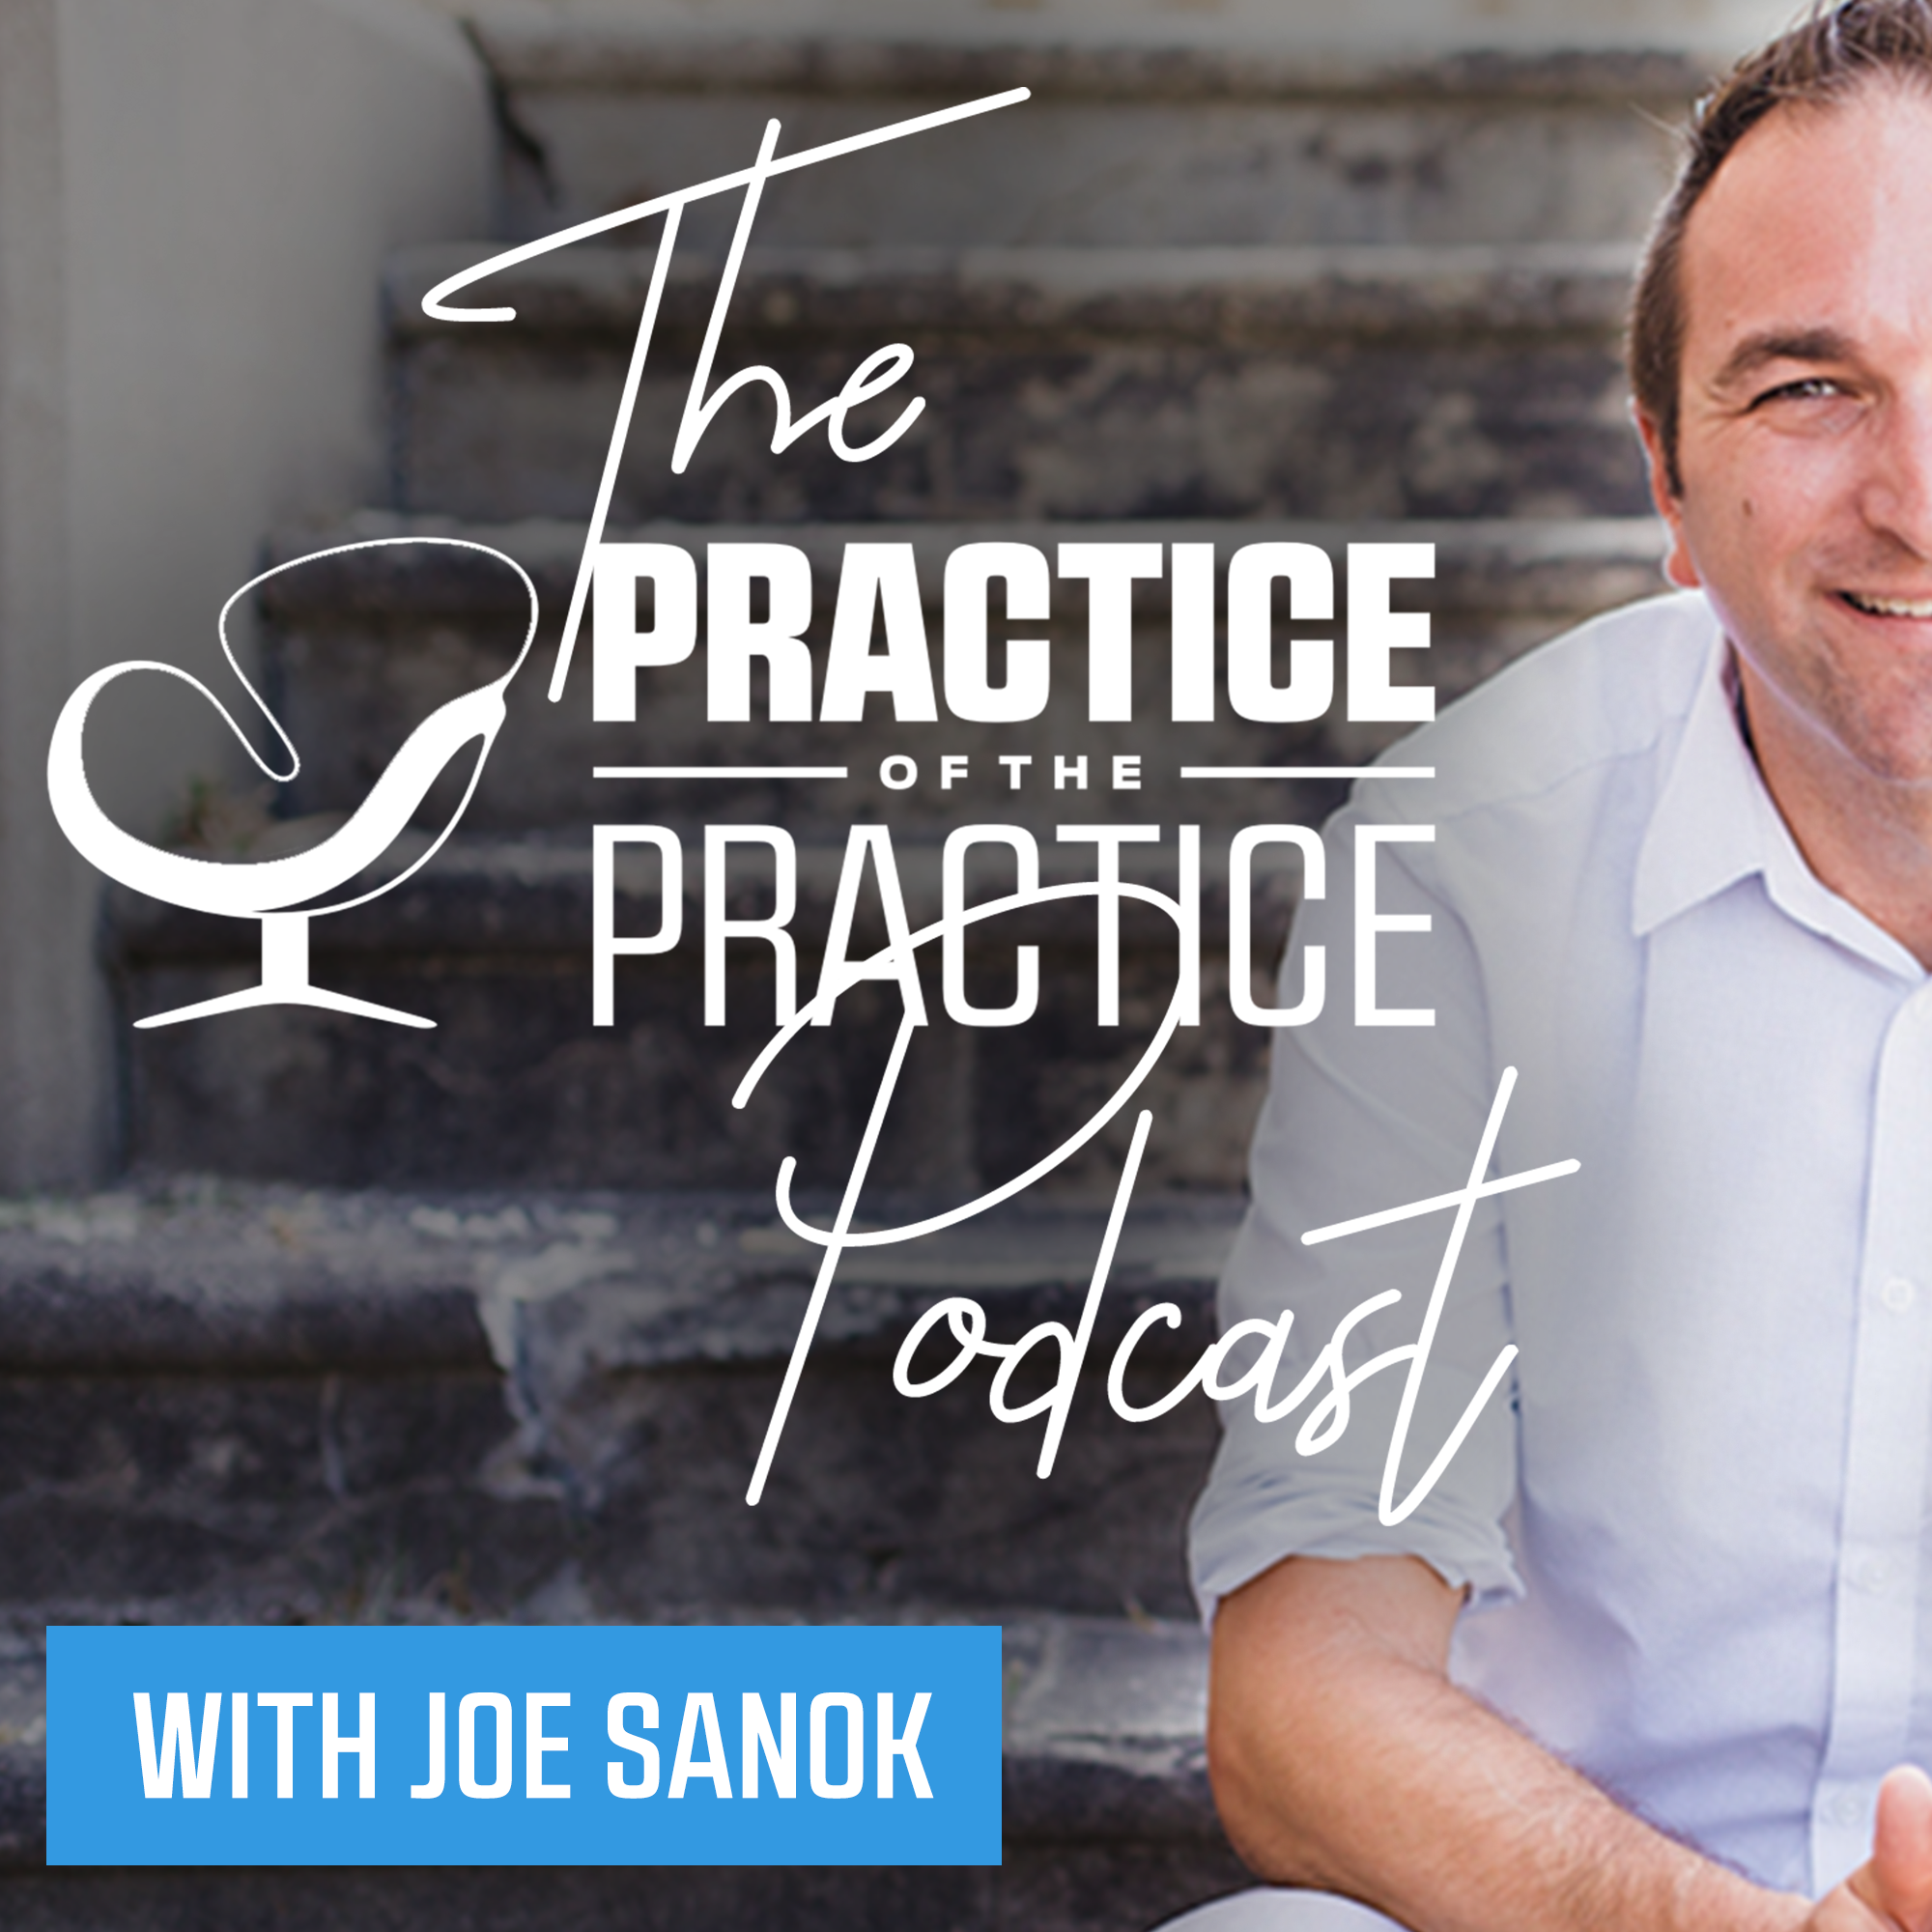 The Practice of the Practice Podcast | Innovative Ideas to Start, Grow, and Scale a Private Practice